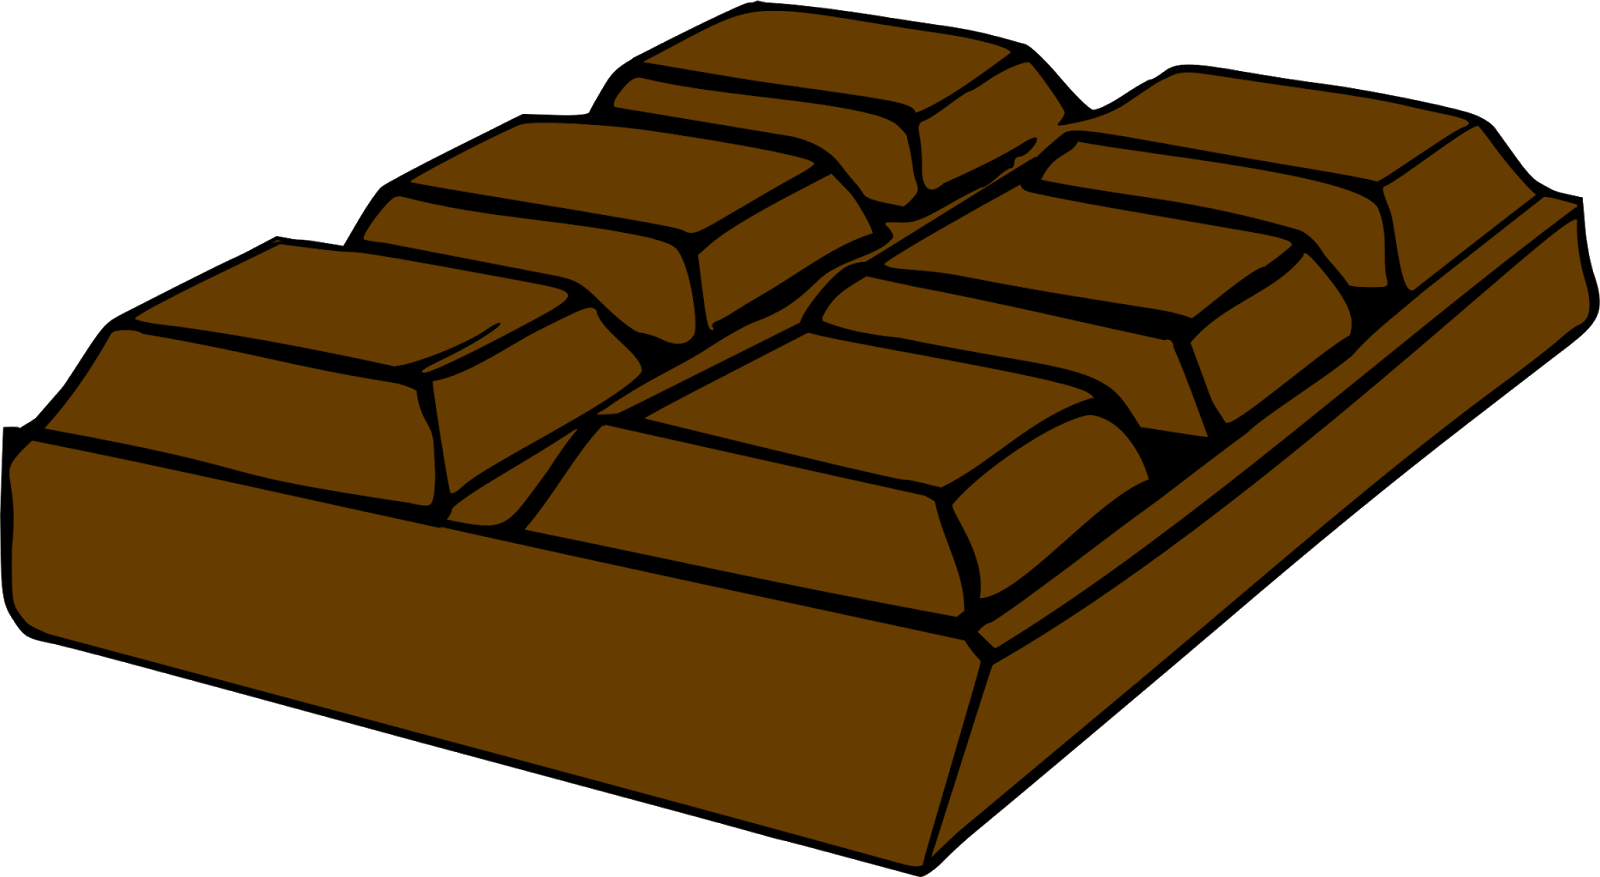 Chocolate candy free download. Waffle clipart animated